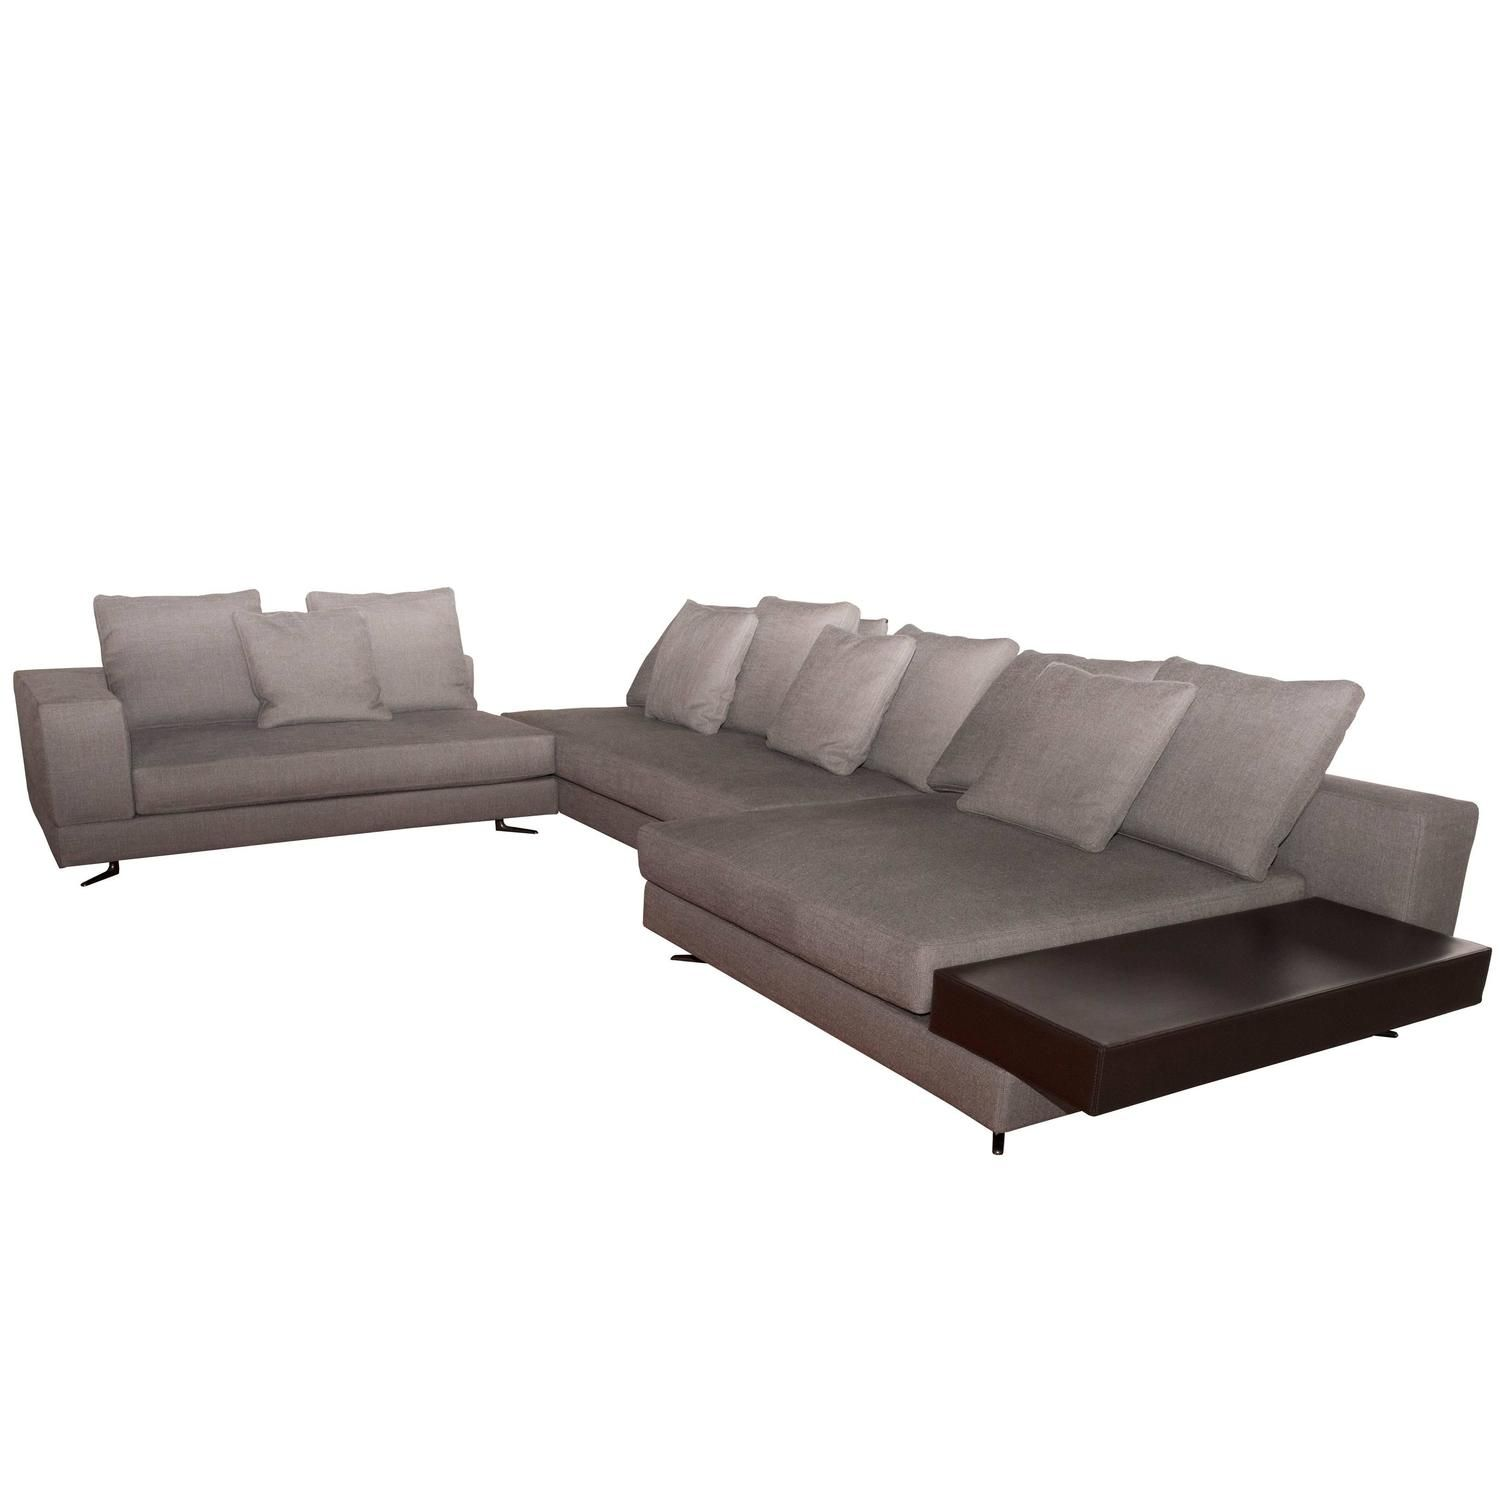 Sensational Minotti White Sectional Sofa Minotti Detail White Caraccident5 Cool Chair Designs And Ideas Caraccident5Info